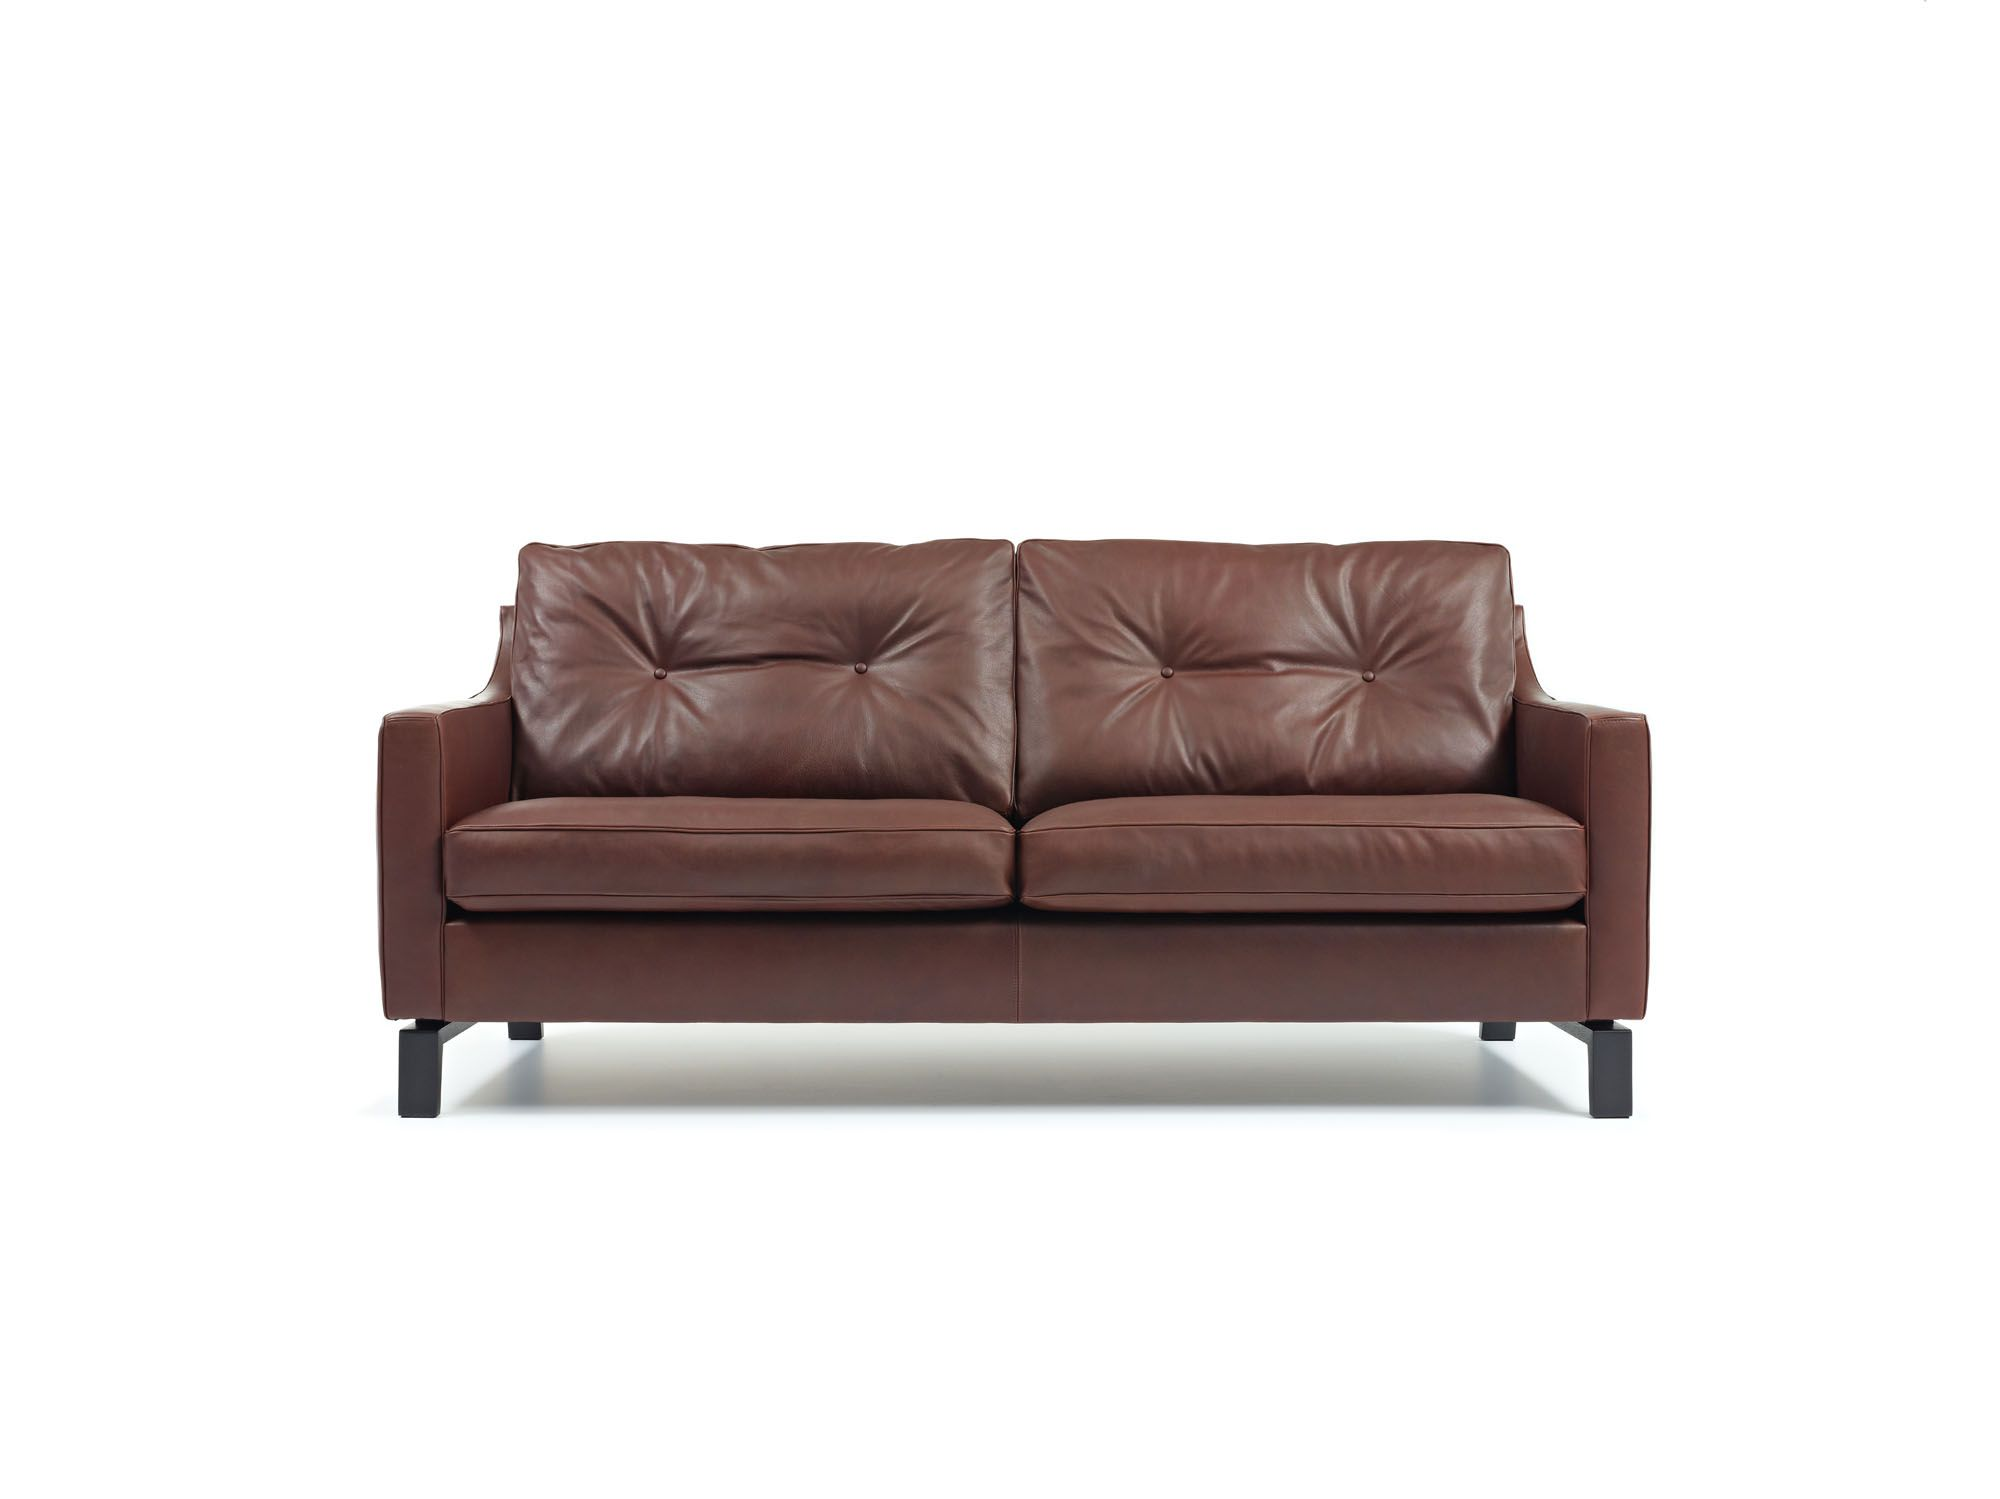 Big Sofa Aspen Aspen Sofas Collectie